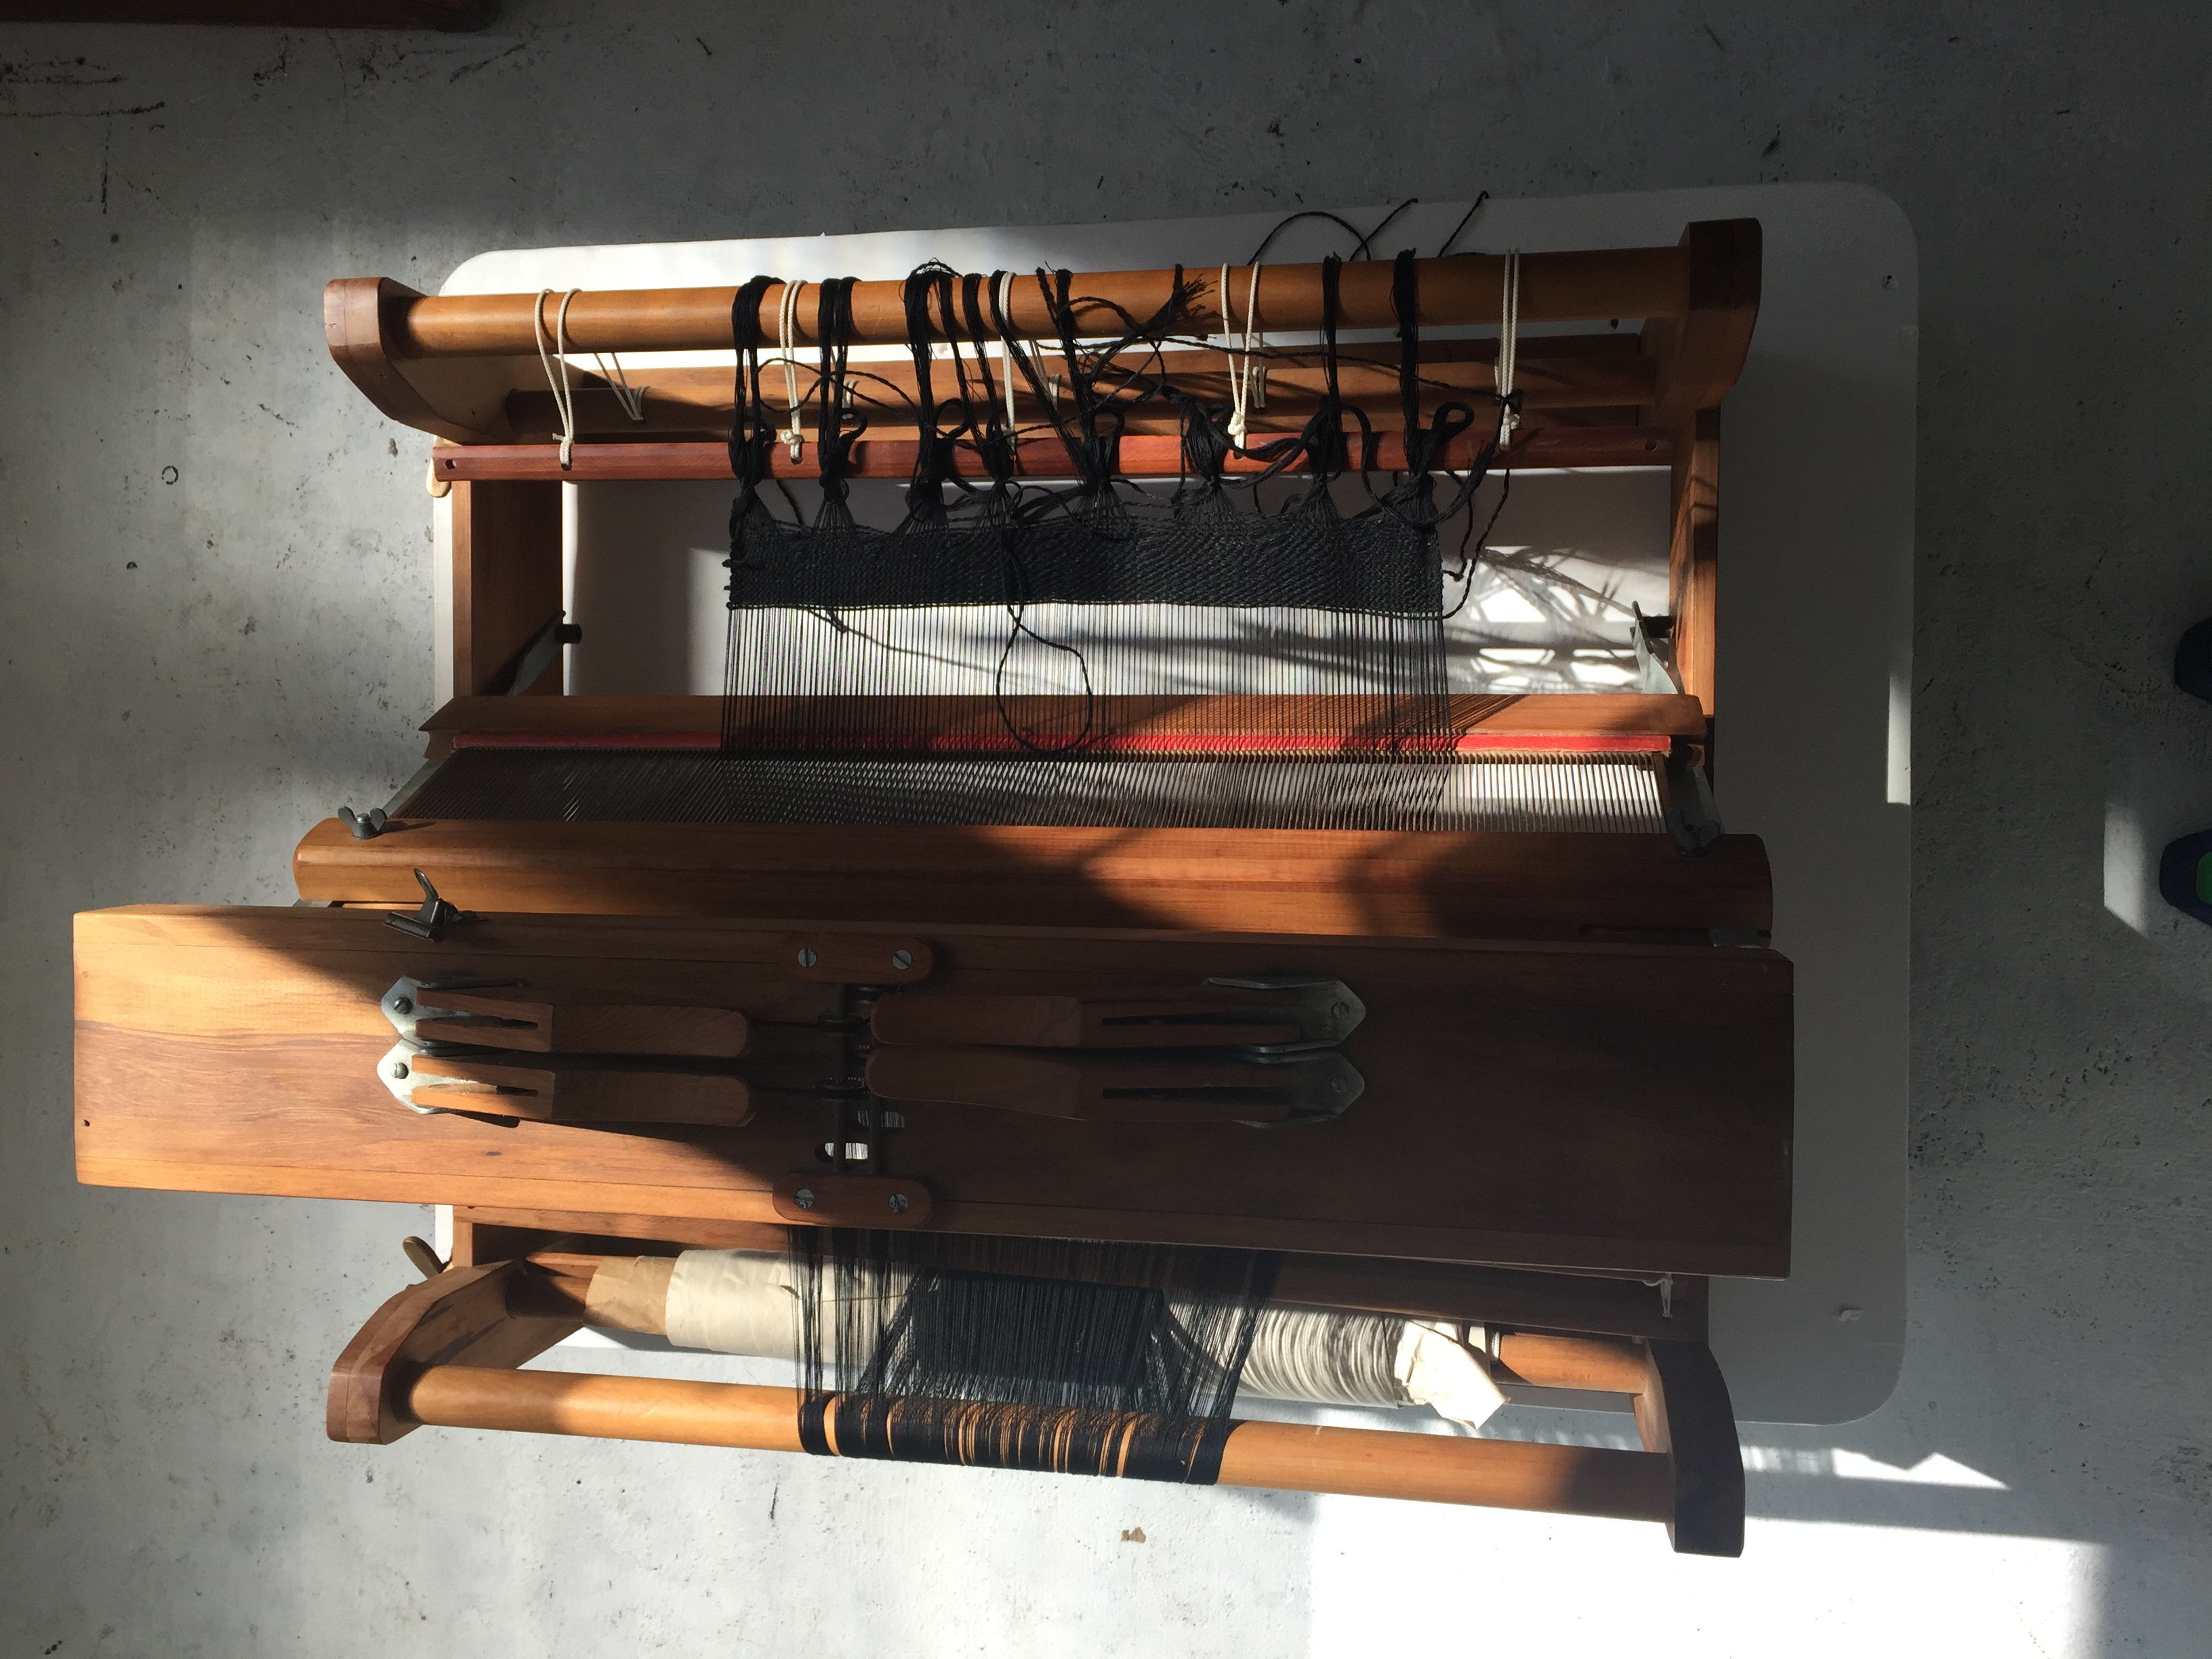 Vintage Teko Teko table loom